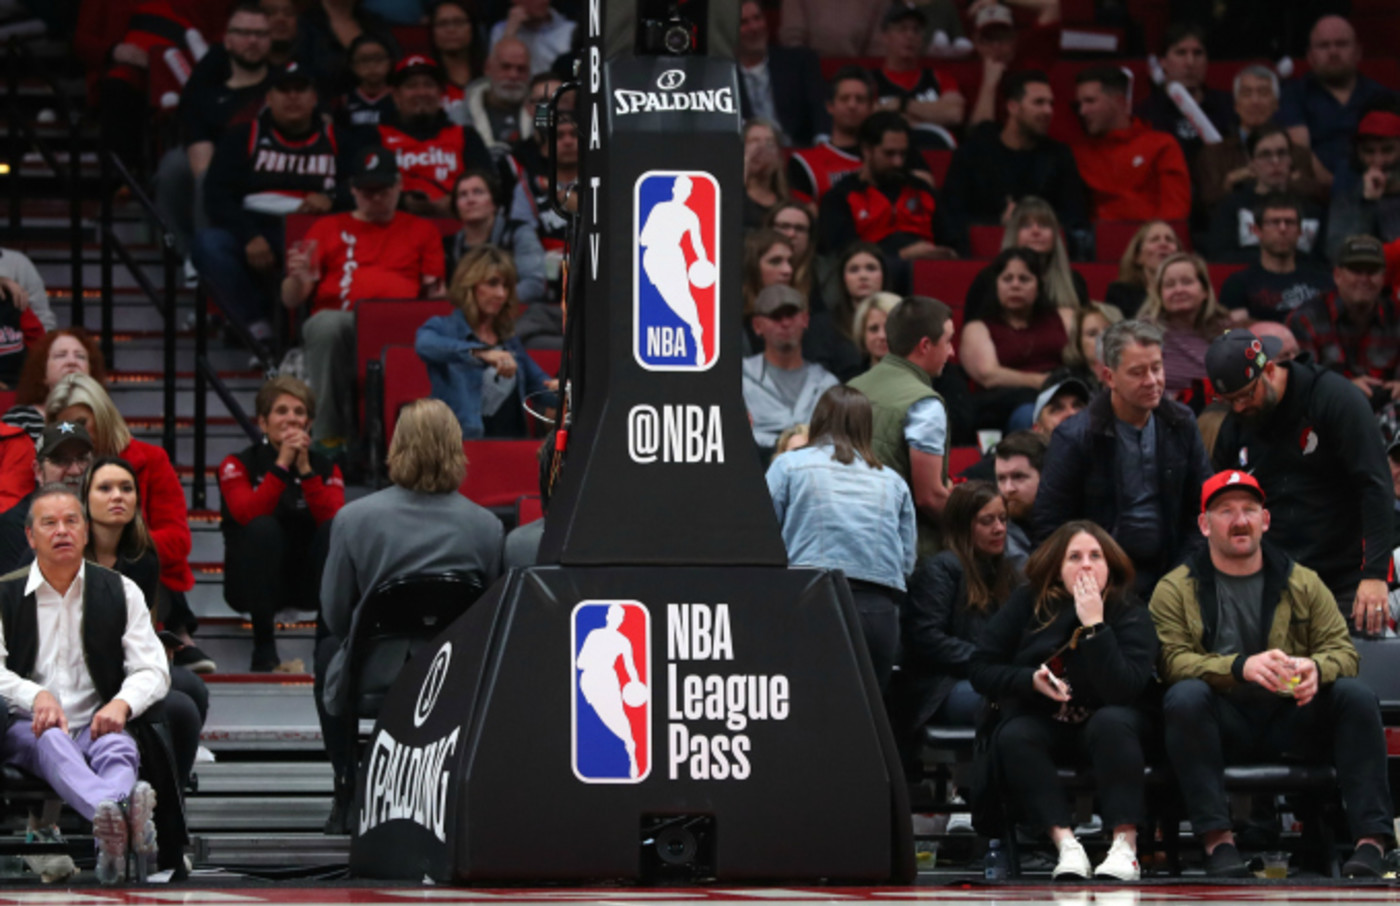 A general view of the NBA logo on the basketball hoop